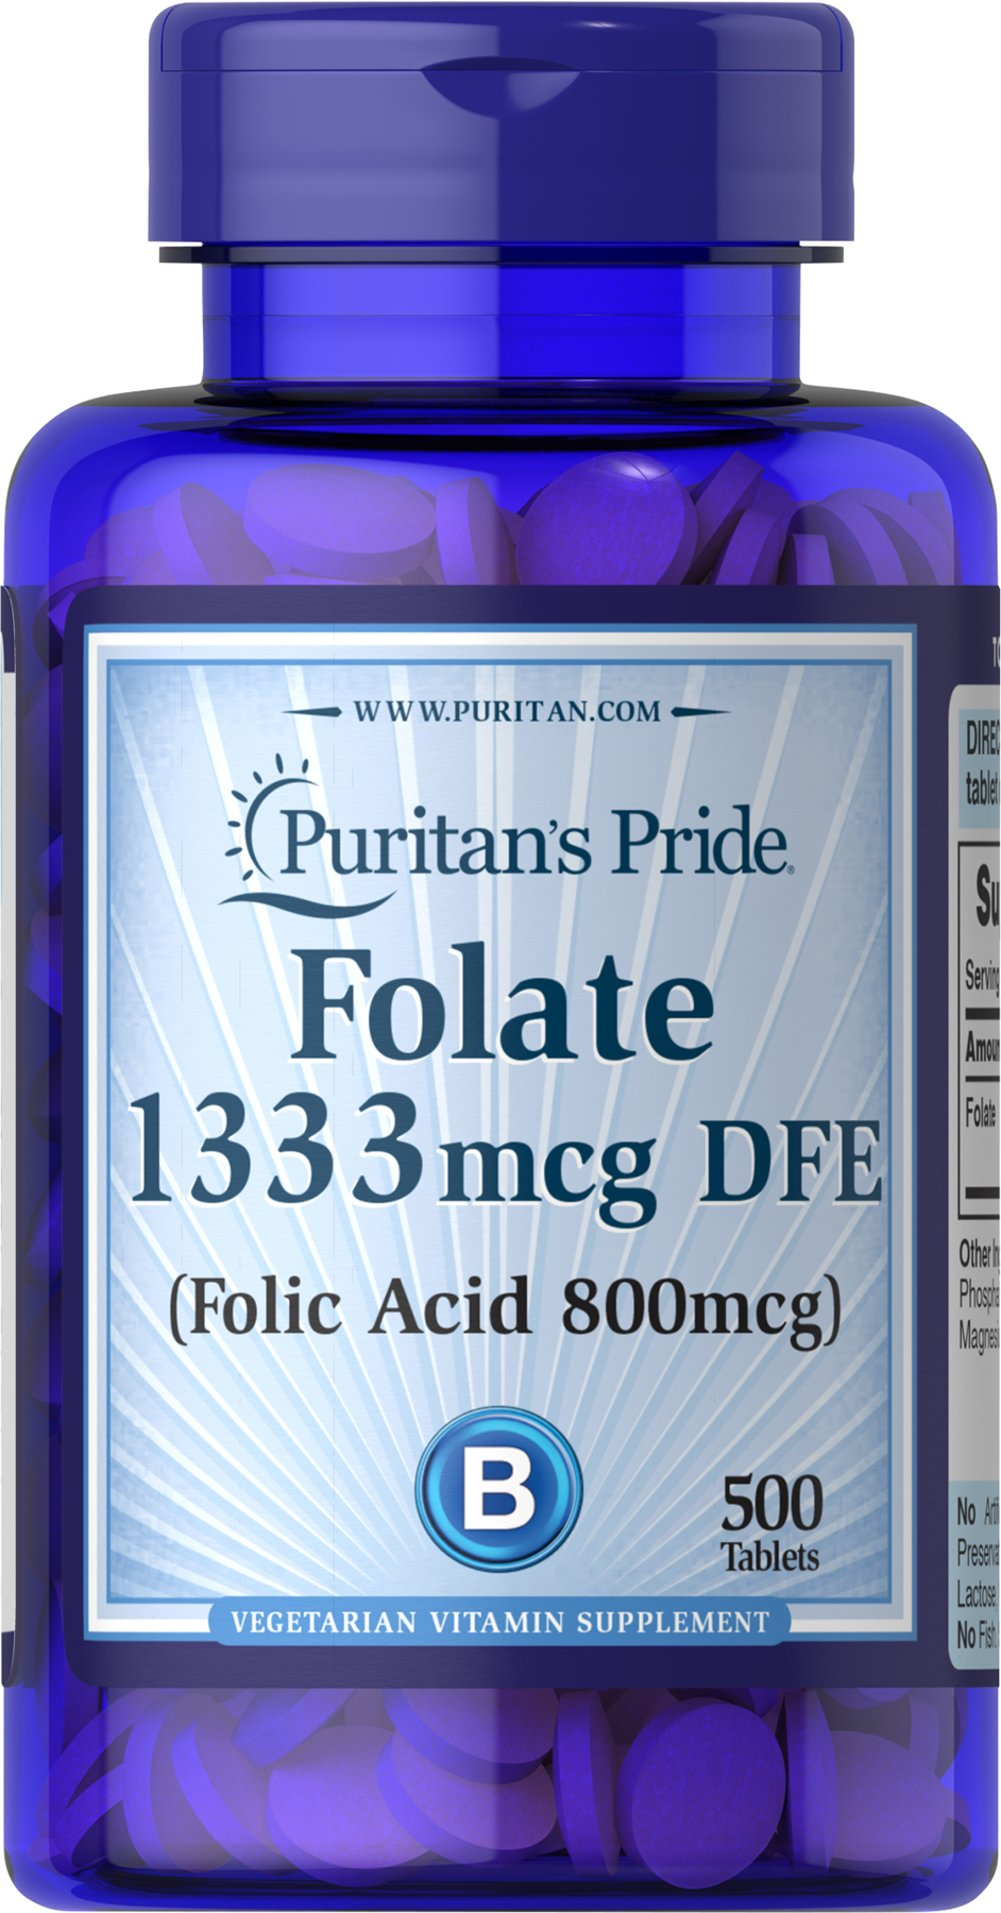 Folic Acid 800 mcg <p>It's well known that Folic Acid is important for pregnant women, but did you also know that this essential B Vitamin also supports cardiovascular health in women and men?** Folic Acid is part of a triad of B Vitamins - along with Vitamins B-6 and B-12 - that helps promote heart health.**</p> 500 Tablets 800 mcg $11.99